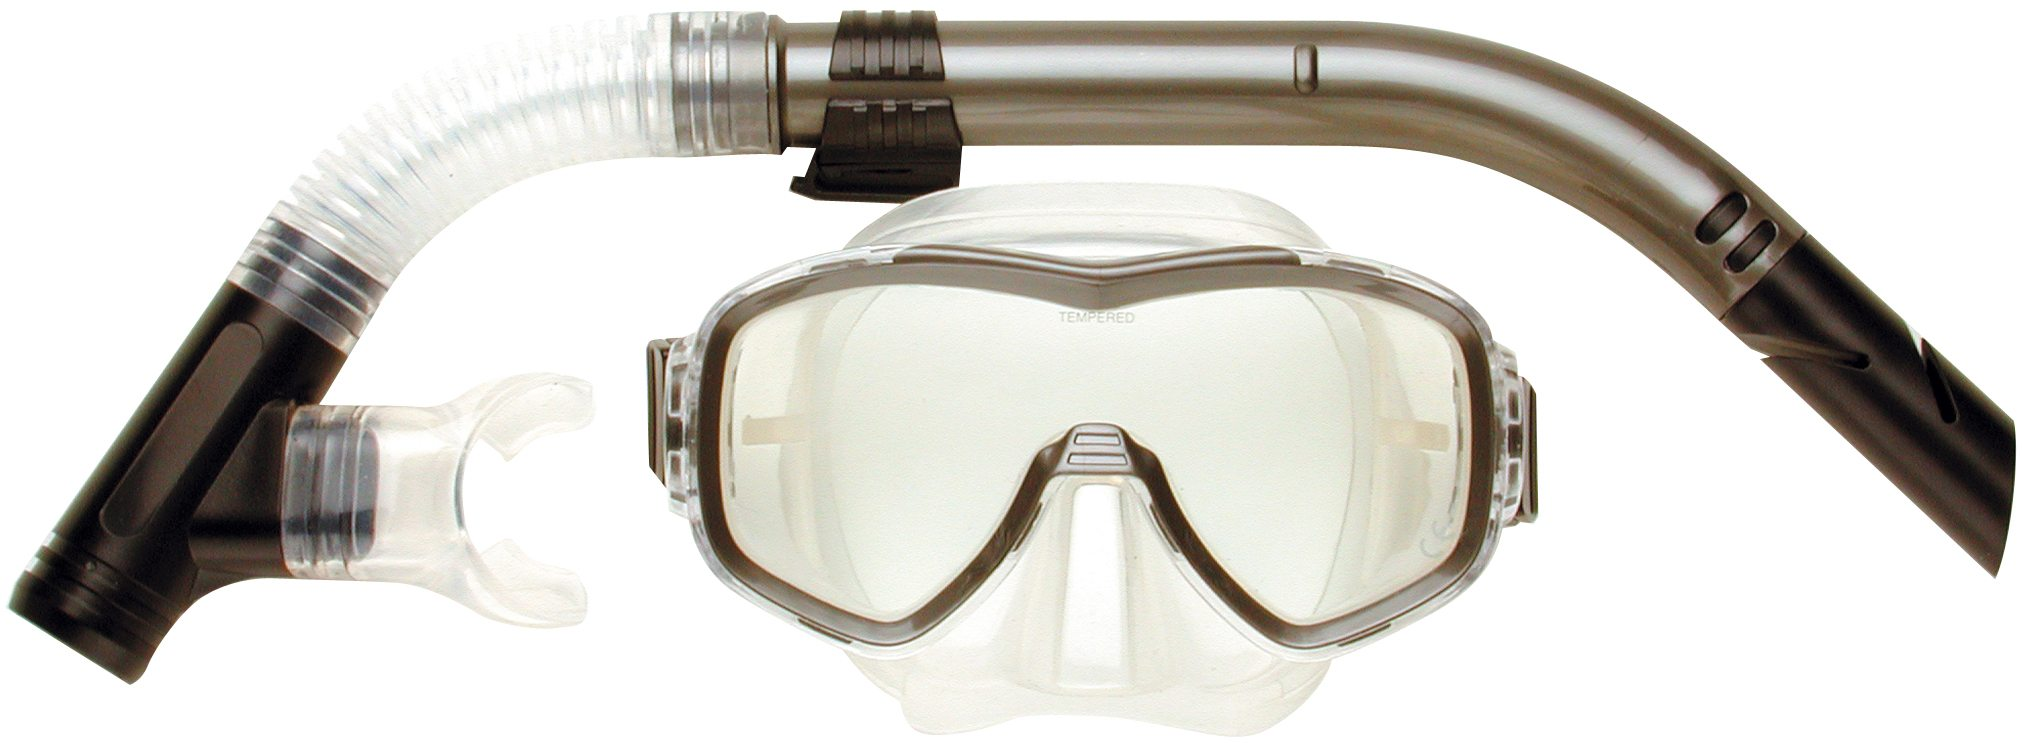 Snorkeling gear-aristocrat-one-lens-silic-set